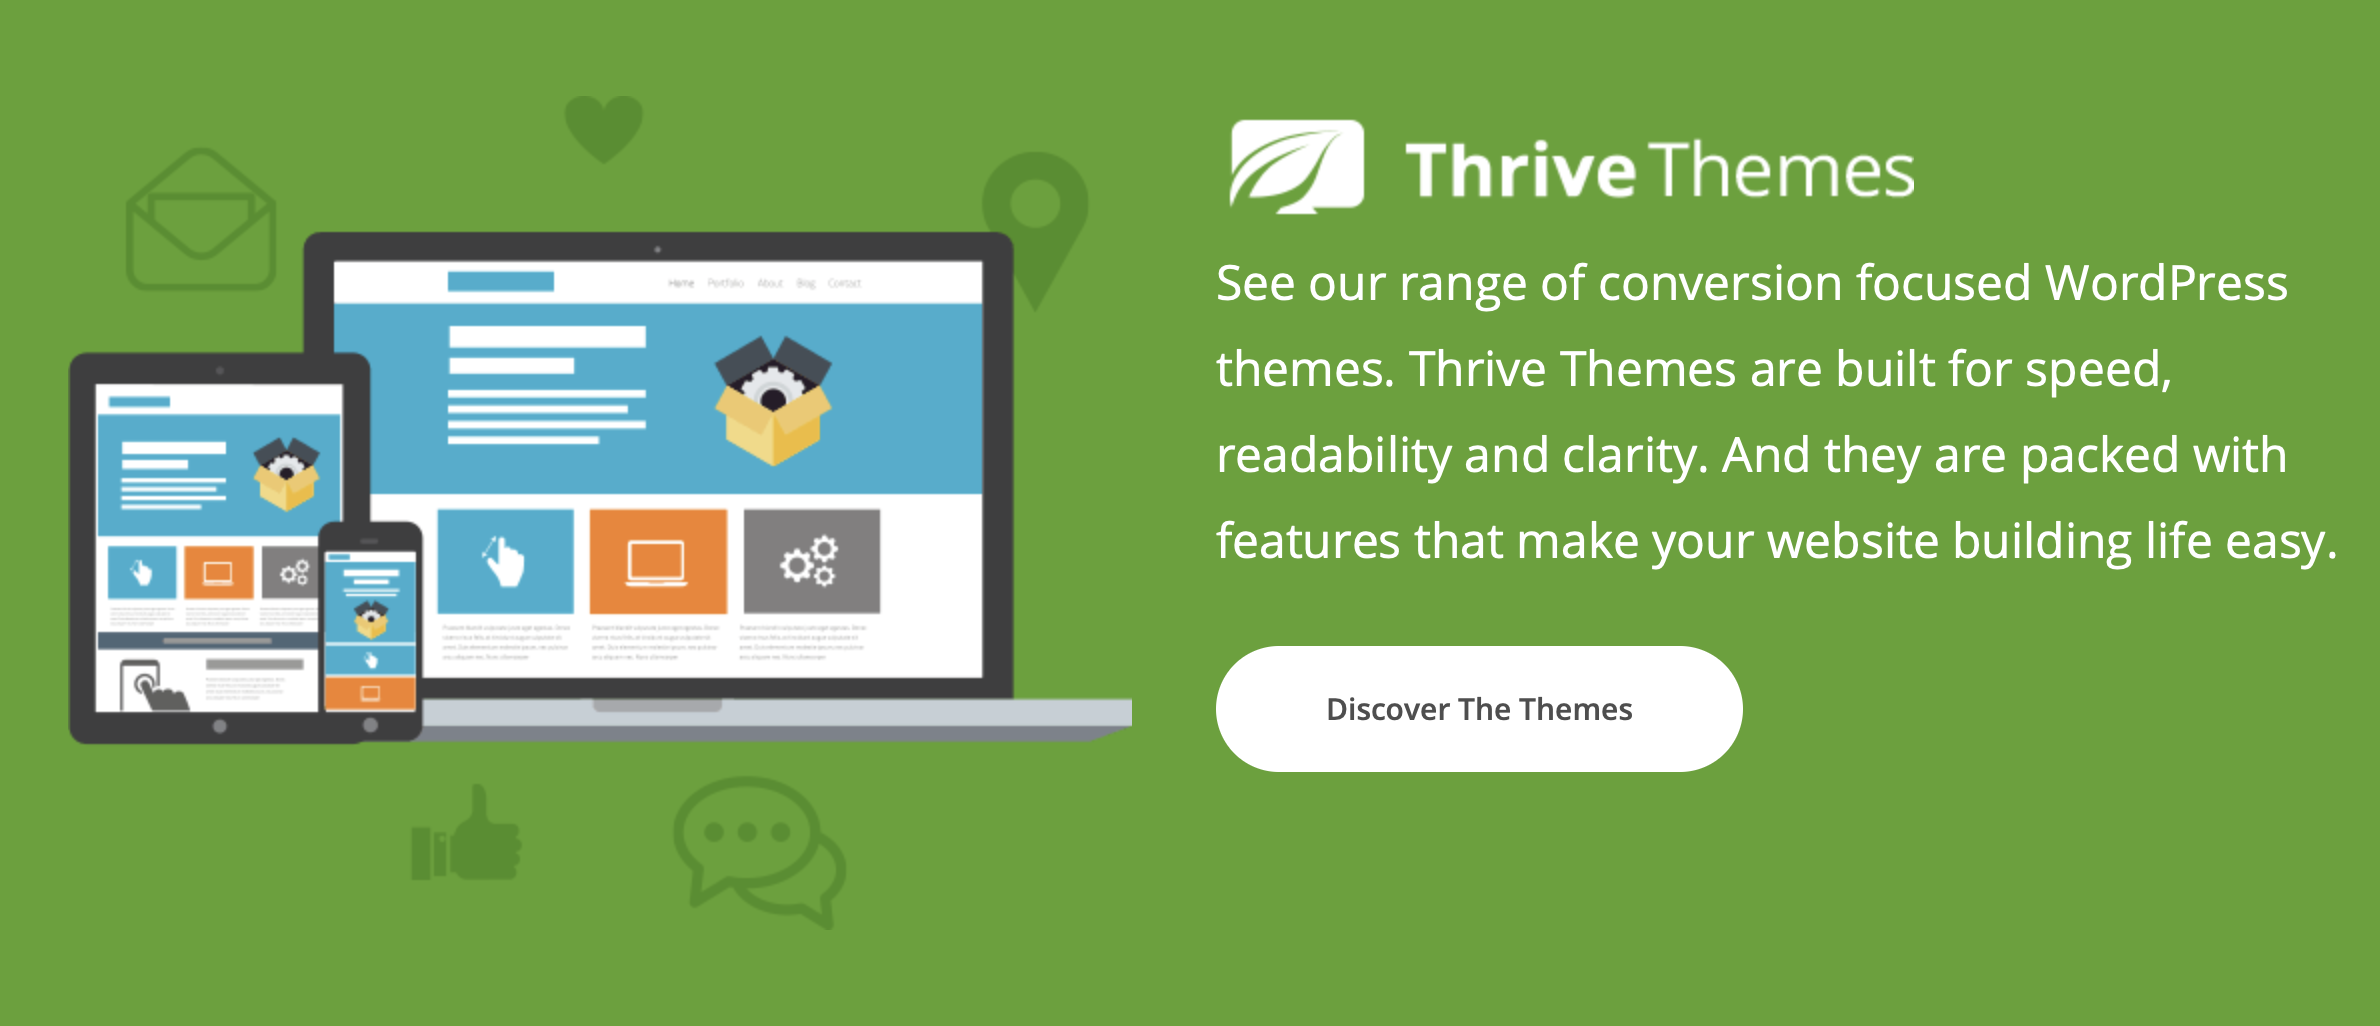 Thrives Themes conversion focused themes